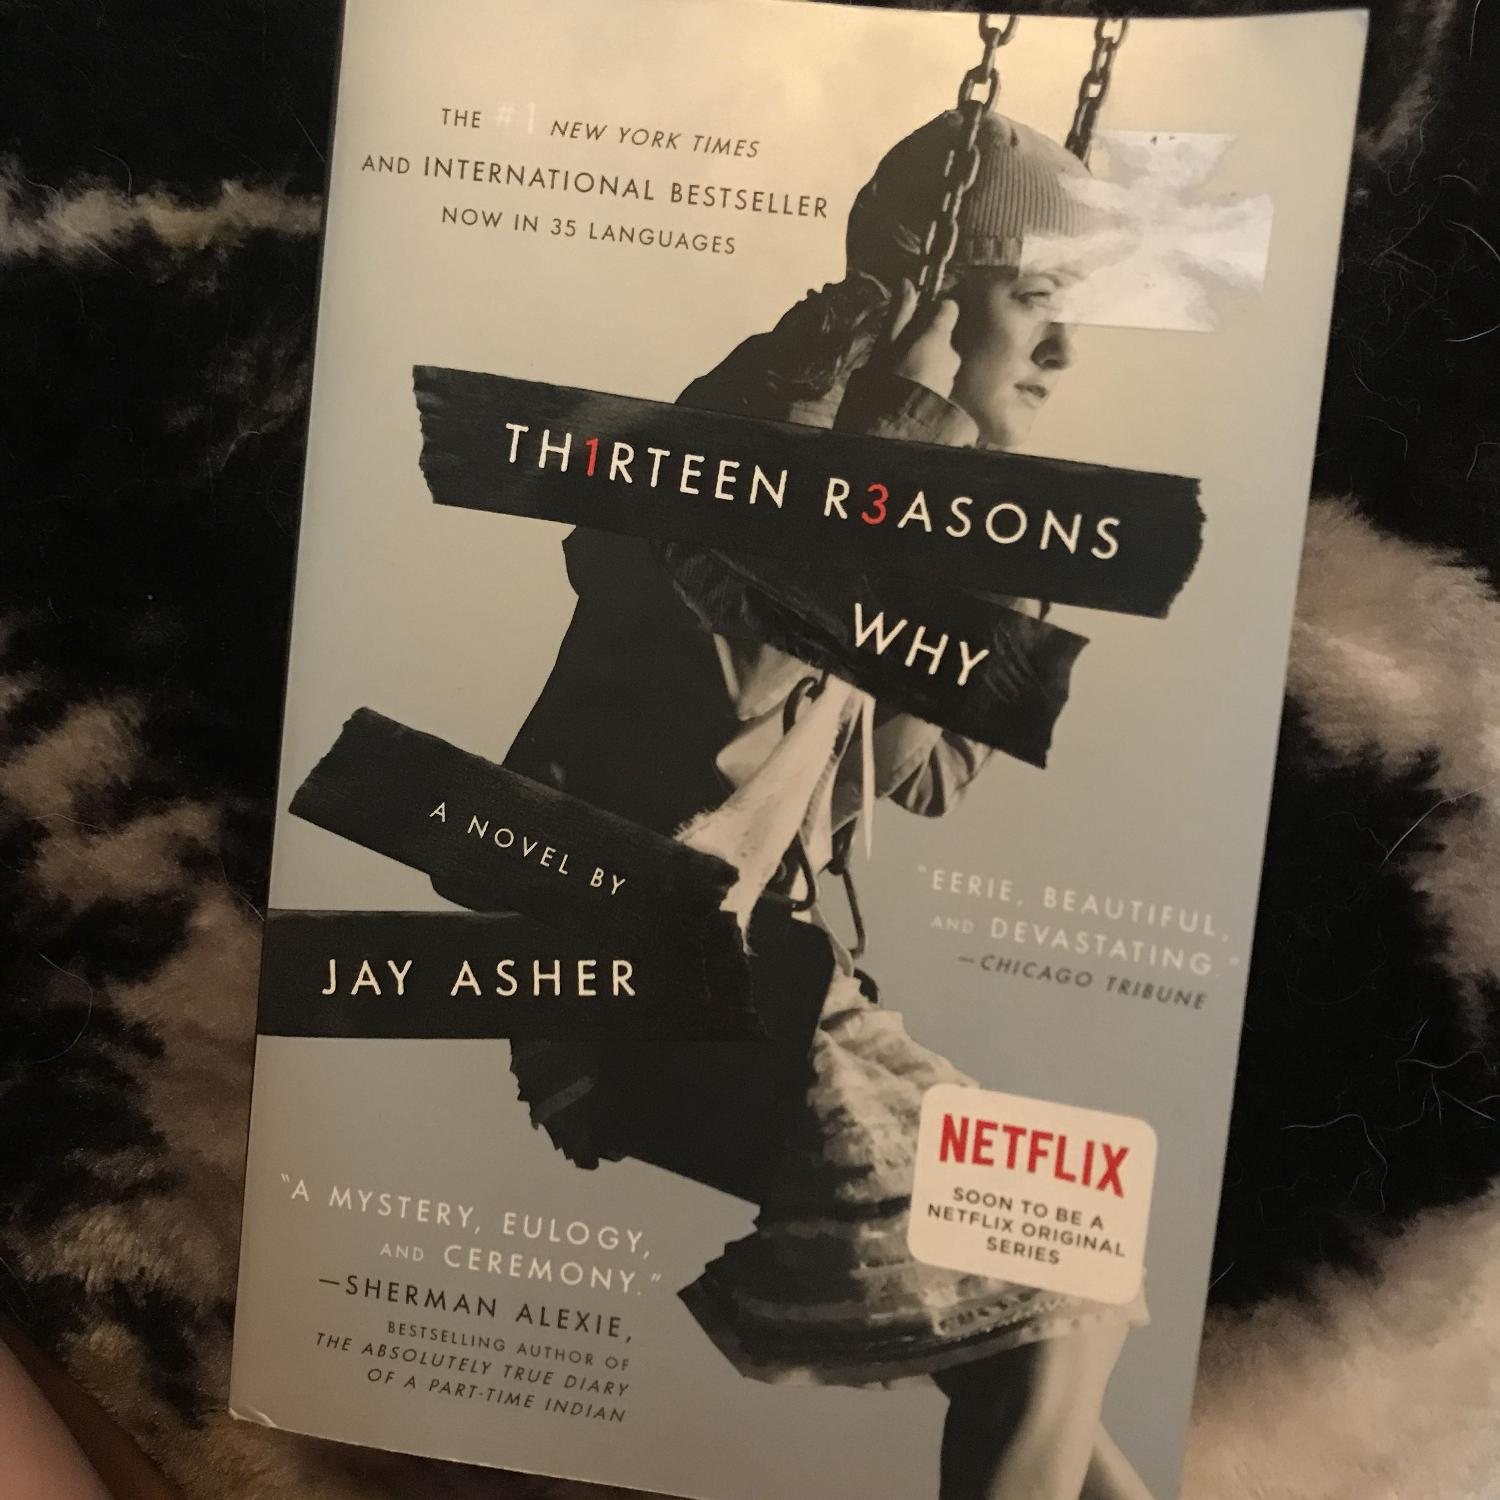 Best 13 Reasons Why Book For Sale In Champaign Illinois For 2019